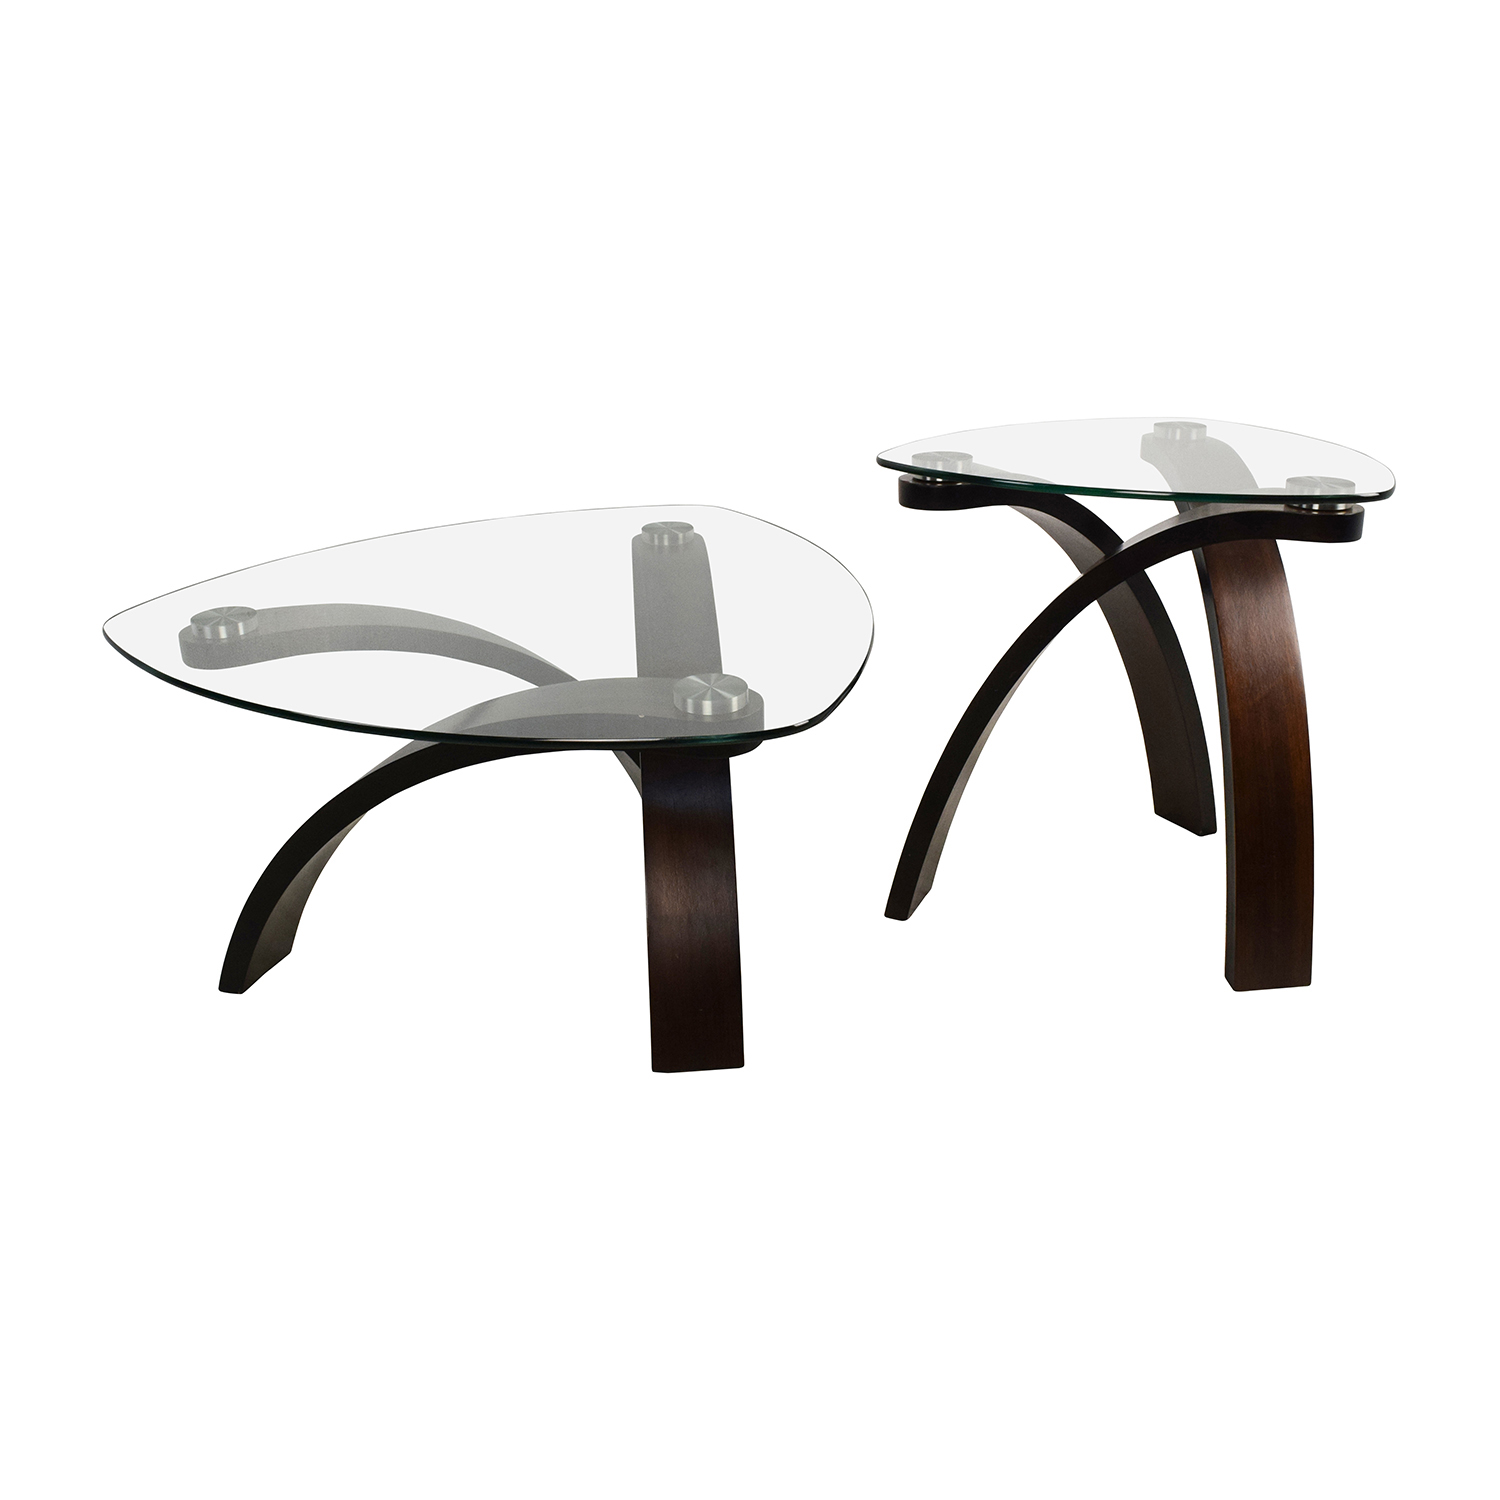 Astonishing 51 Off Raymour Flanigan Raymour Flanigan Allure Coffee Table Set Tables Download Free Architecture Designs Grimeyleaguecom